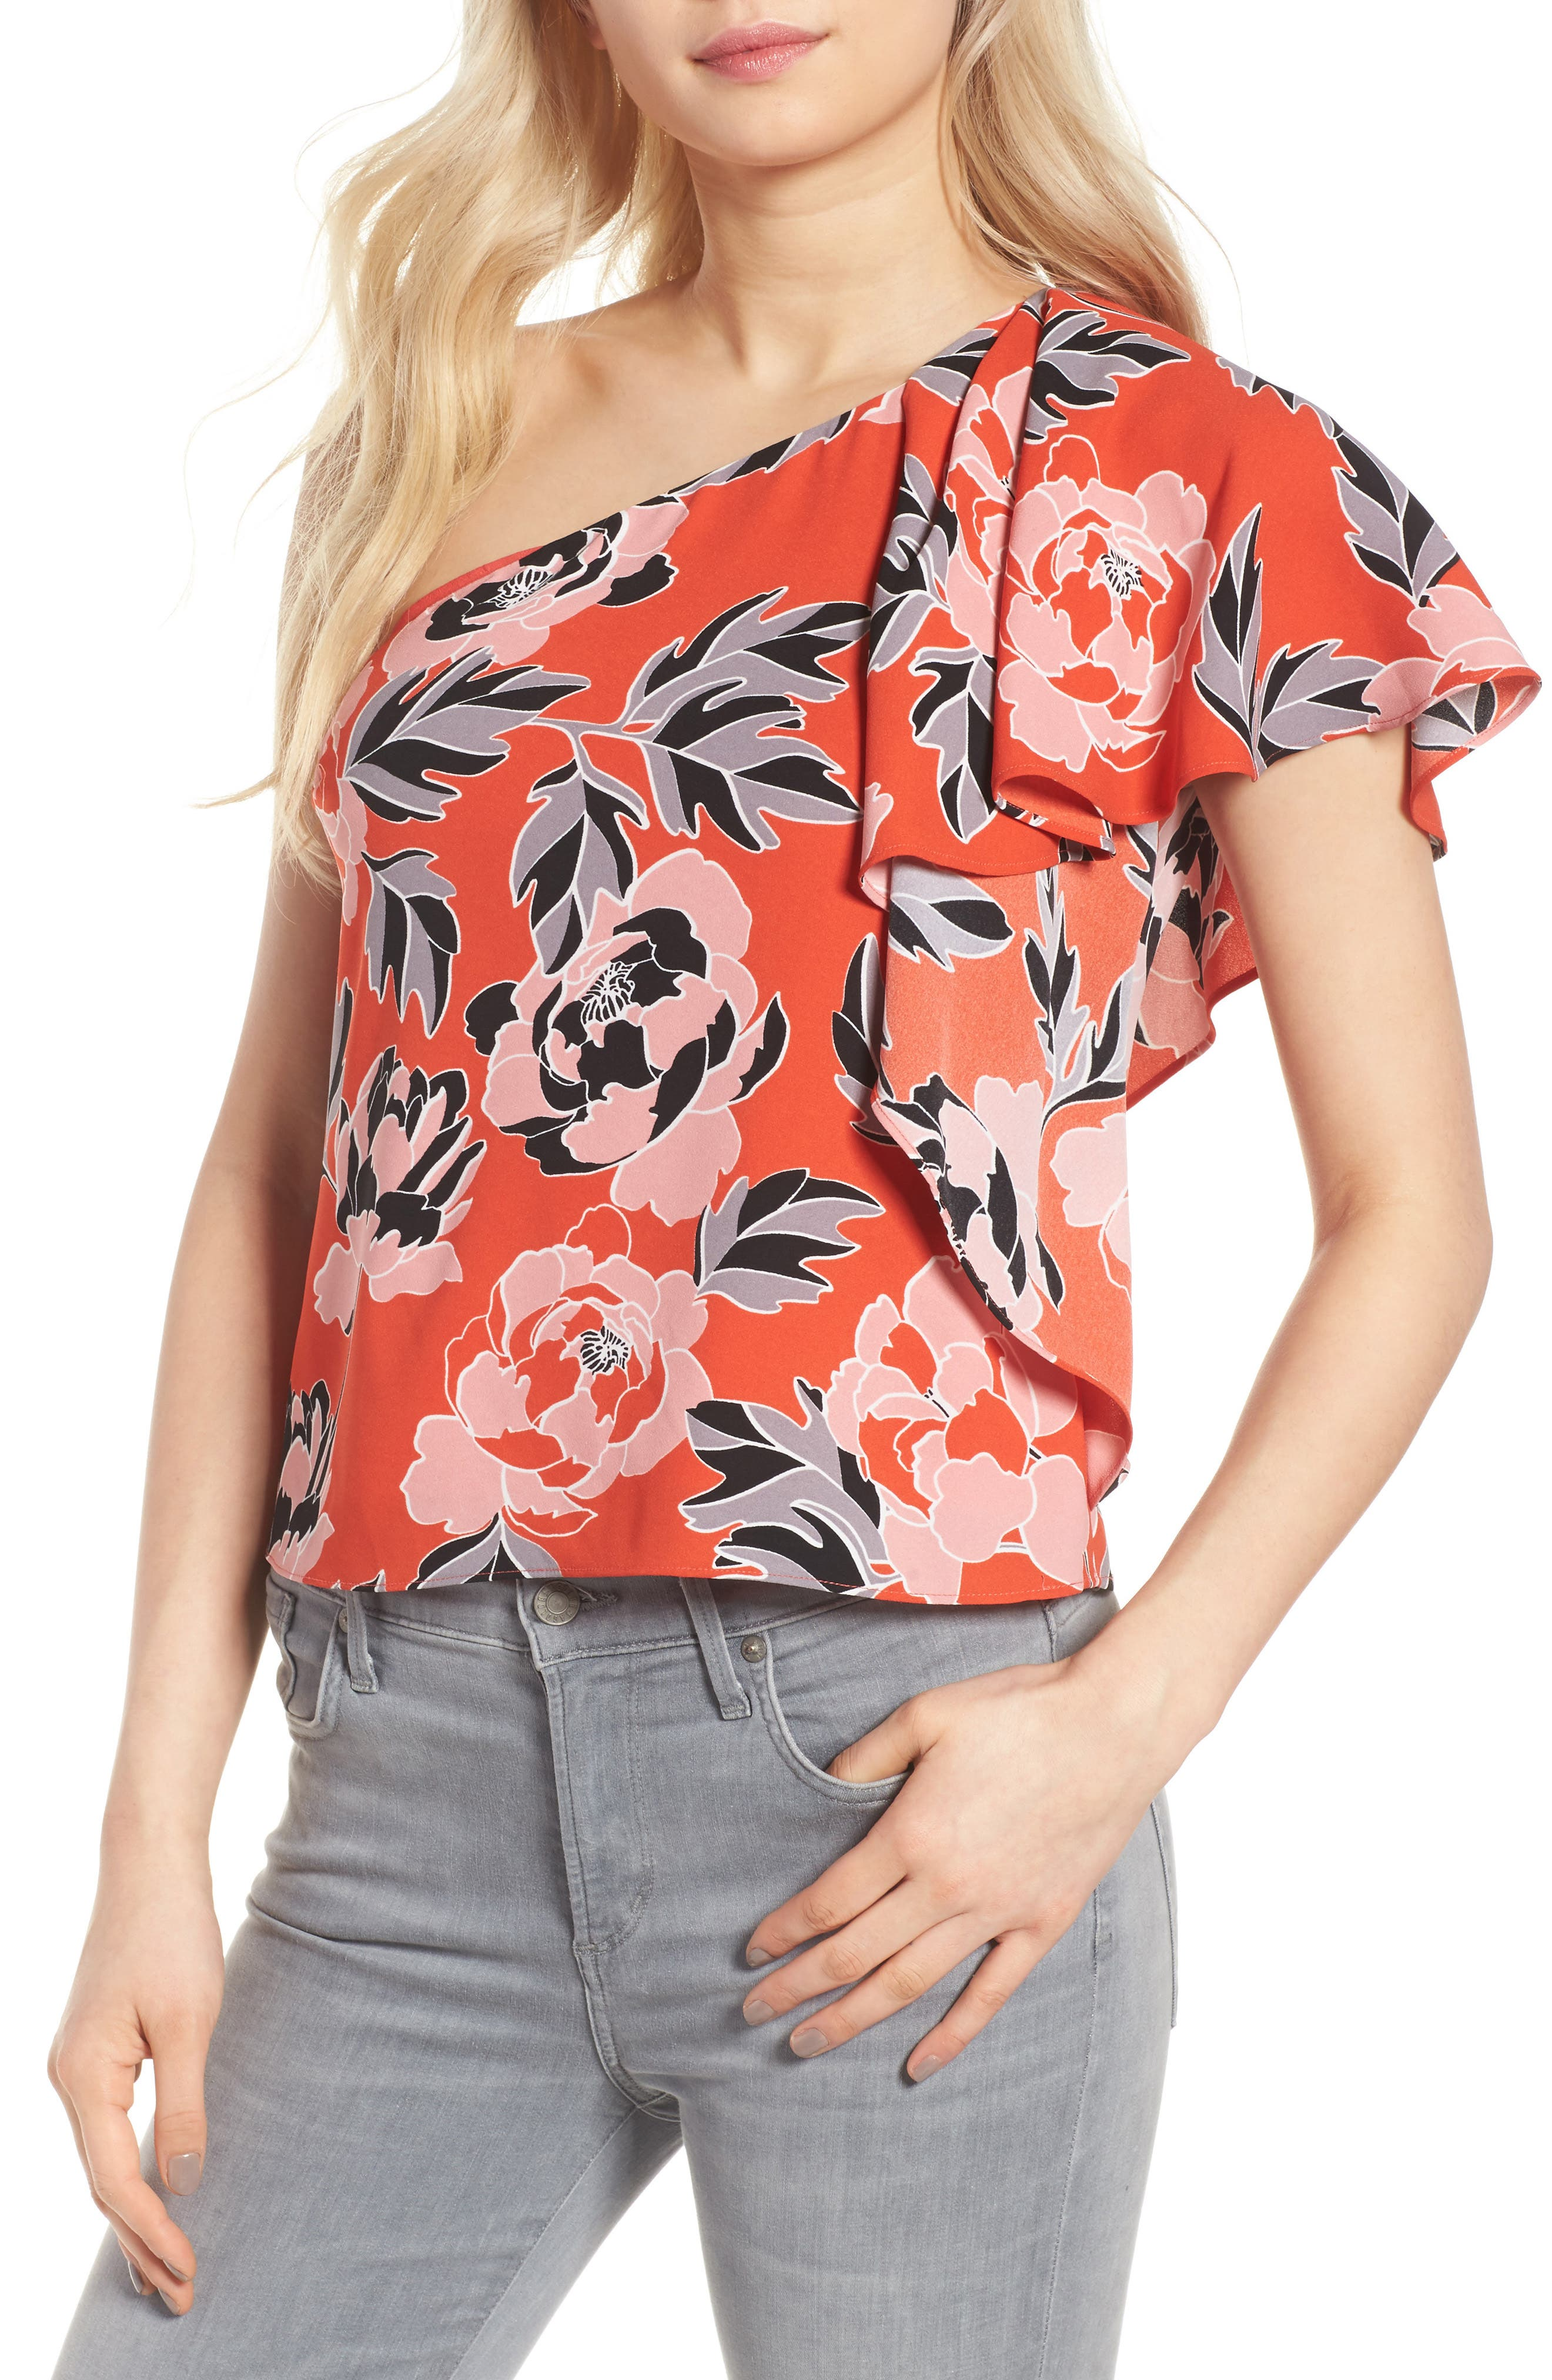 cooper & ella Livia One-Shoulder Top